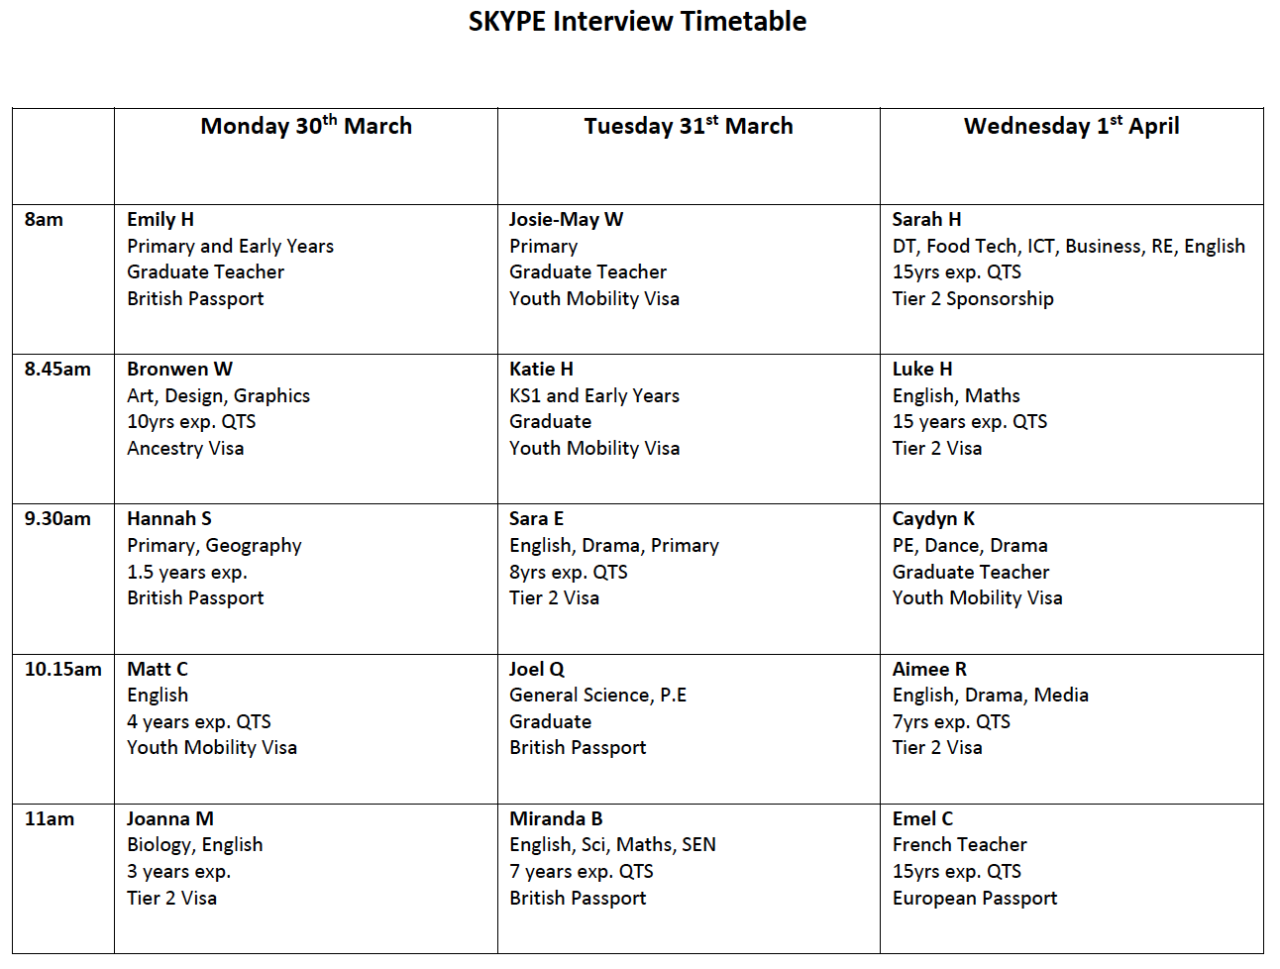 Skype Interview timetable example